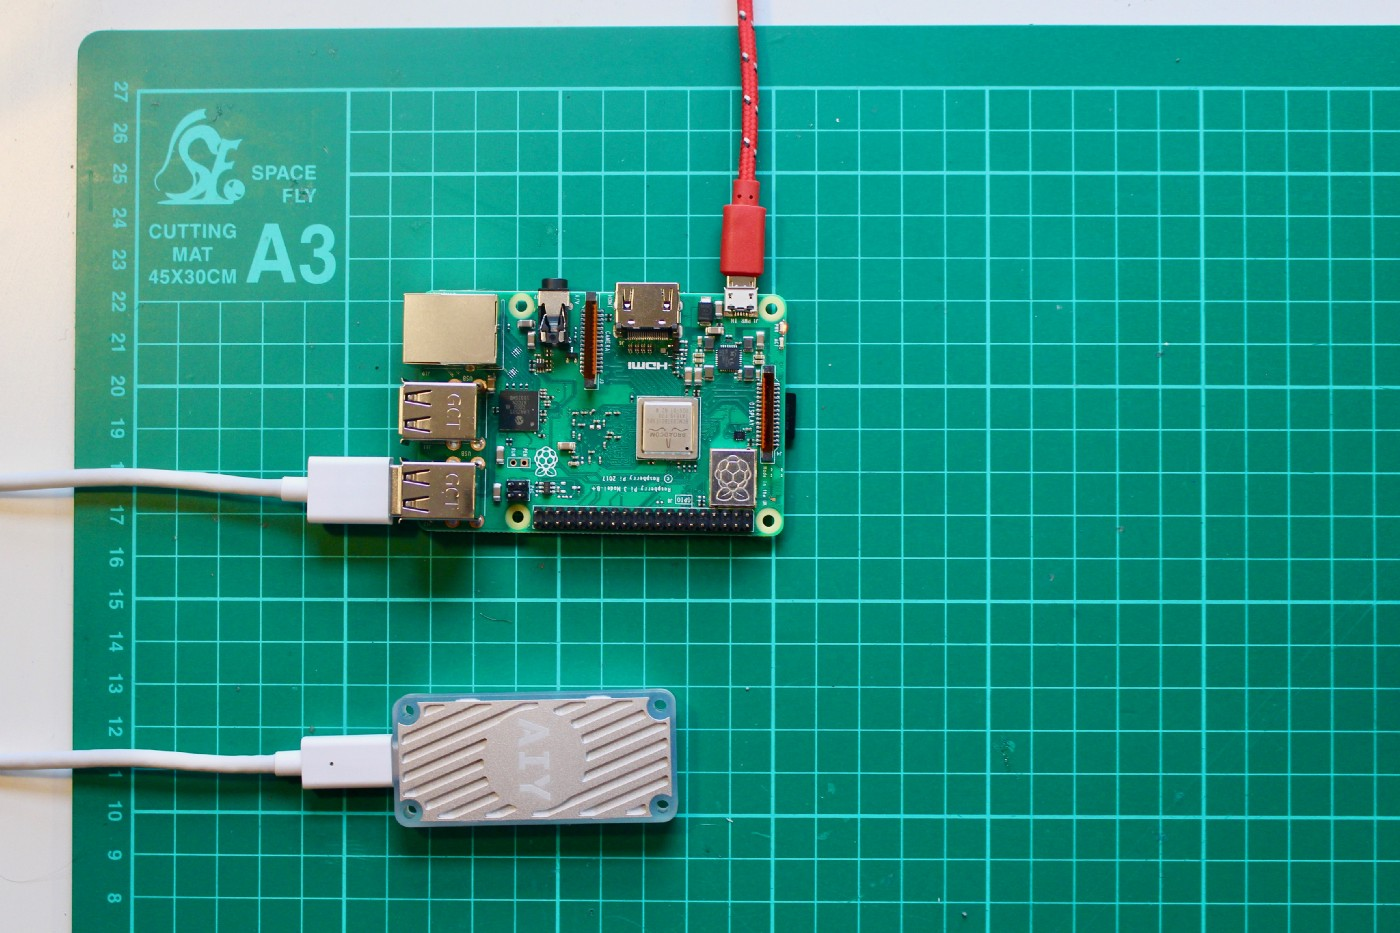 Hands on with the Coral USB Accelerator - Alasdair Allan - Medium